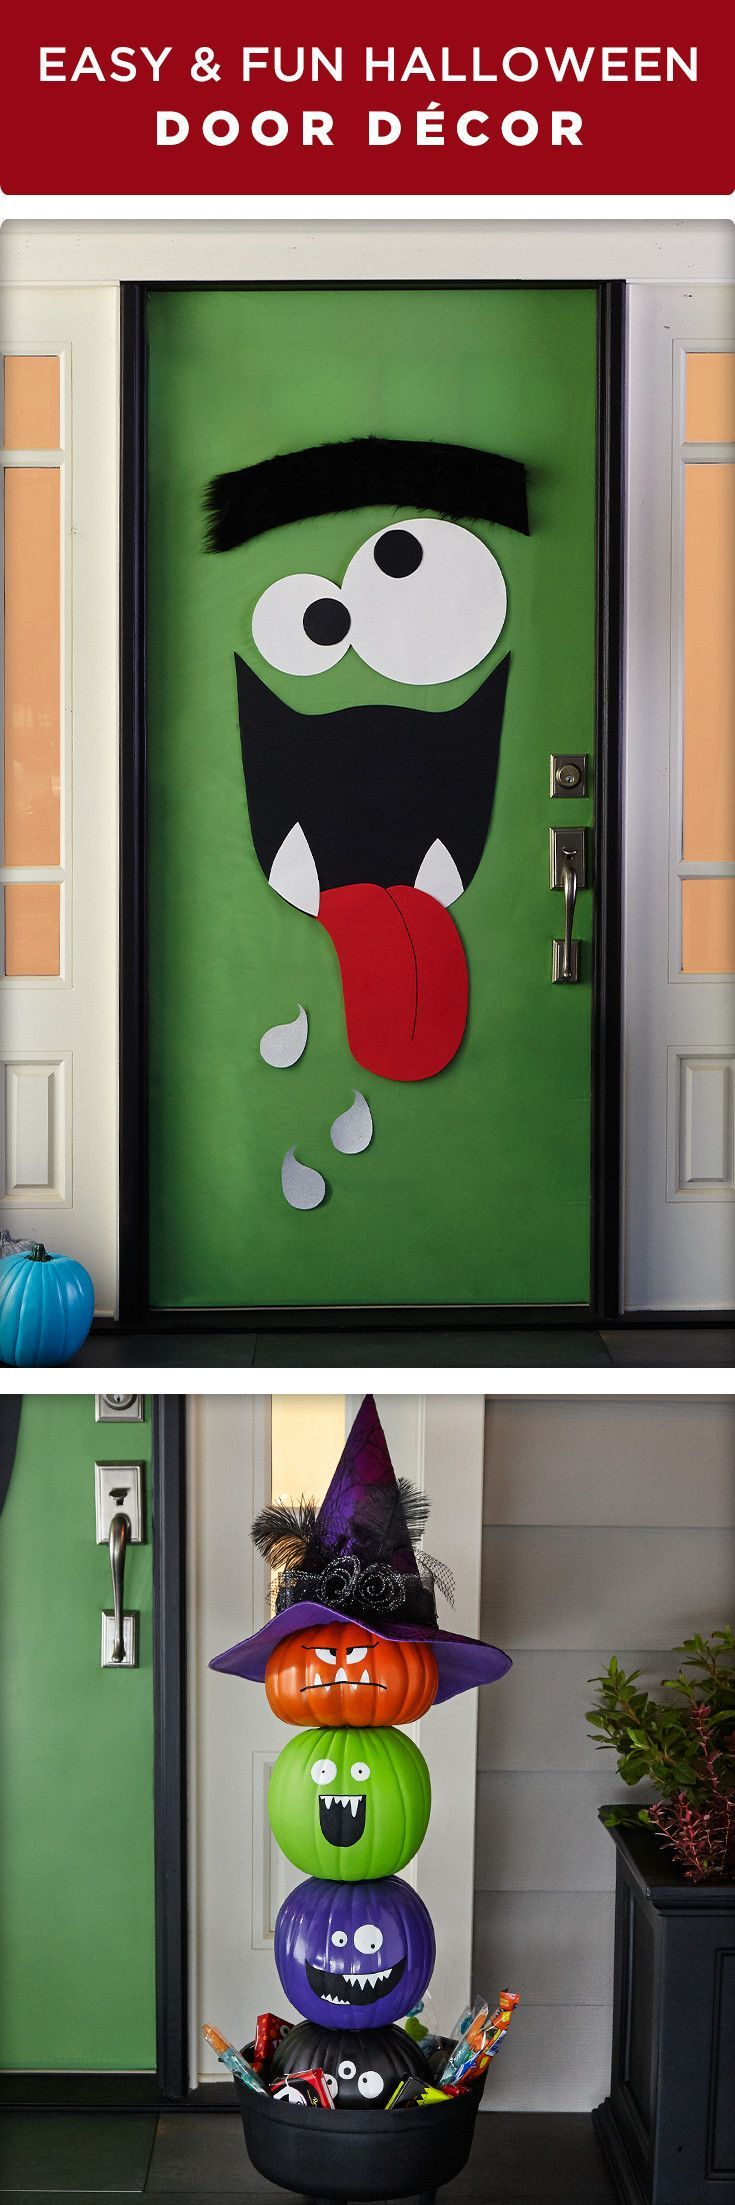 Cute halloween door decorations - Decorate Your Front Door For Trick Or Treaters This Halloween These D Cor Ideas Are Easy